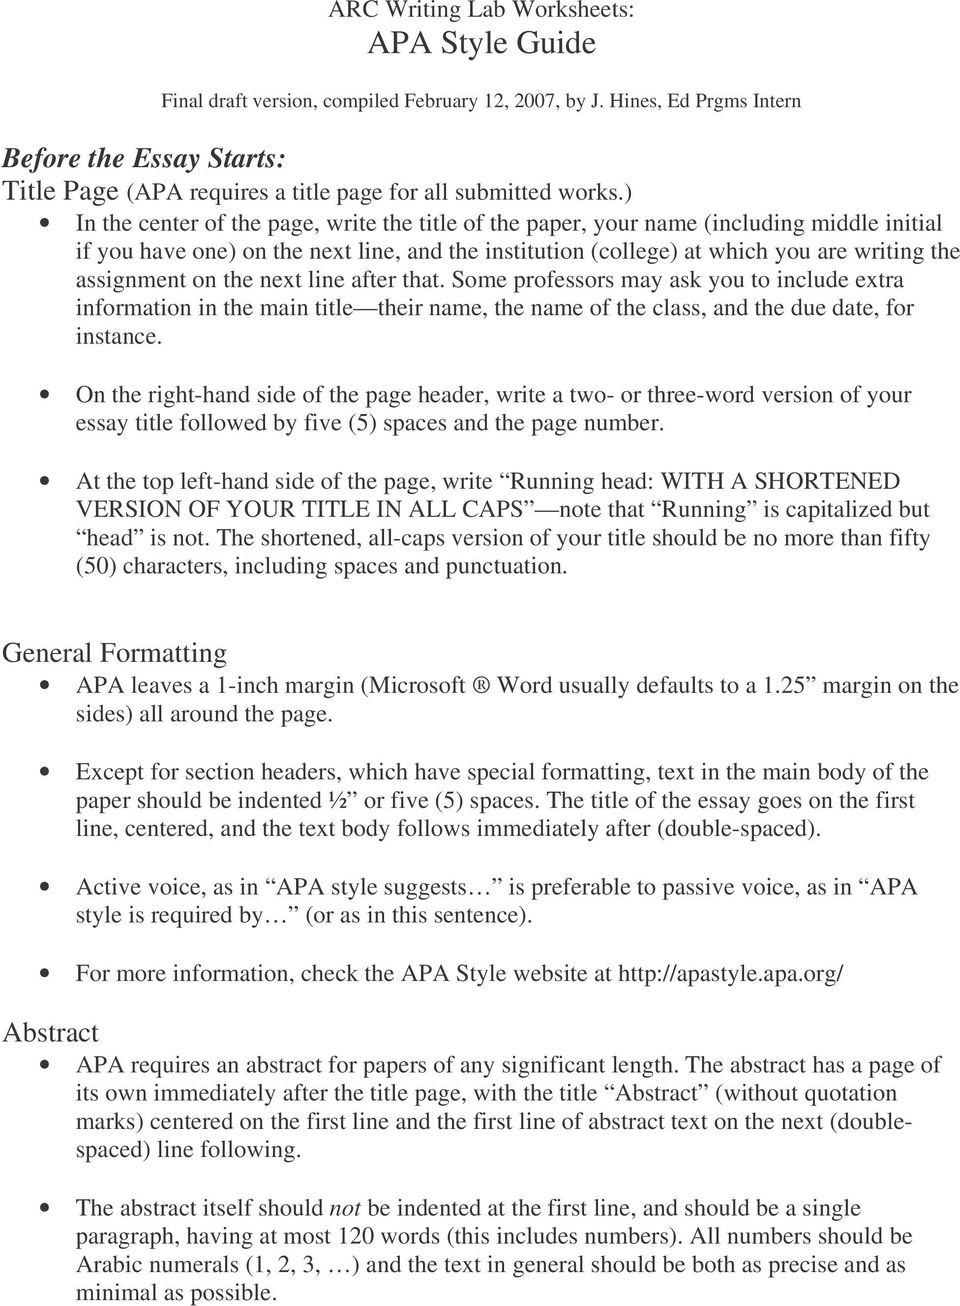 ARC Writing Lab Worksheets: APA Style Guide  Final draft